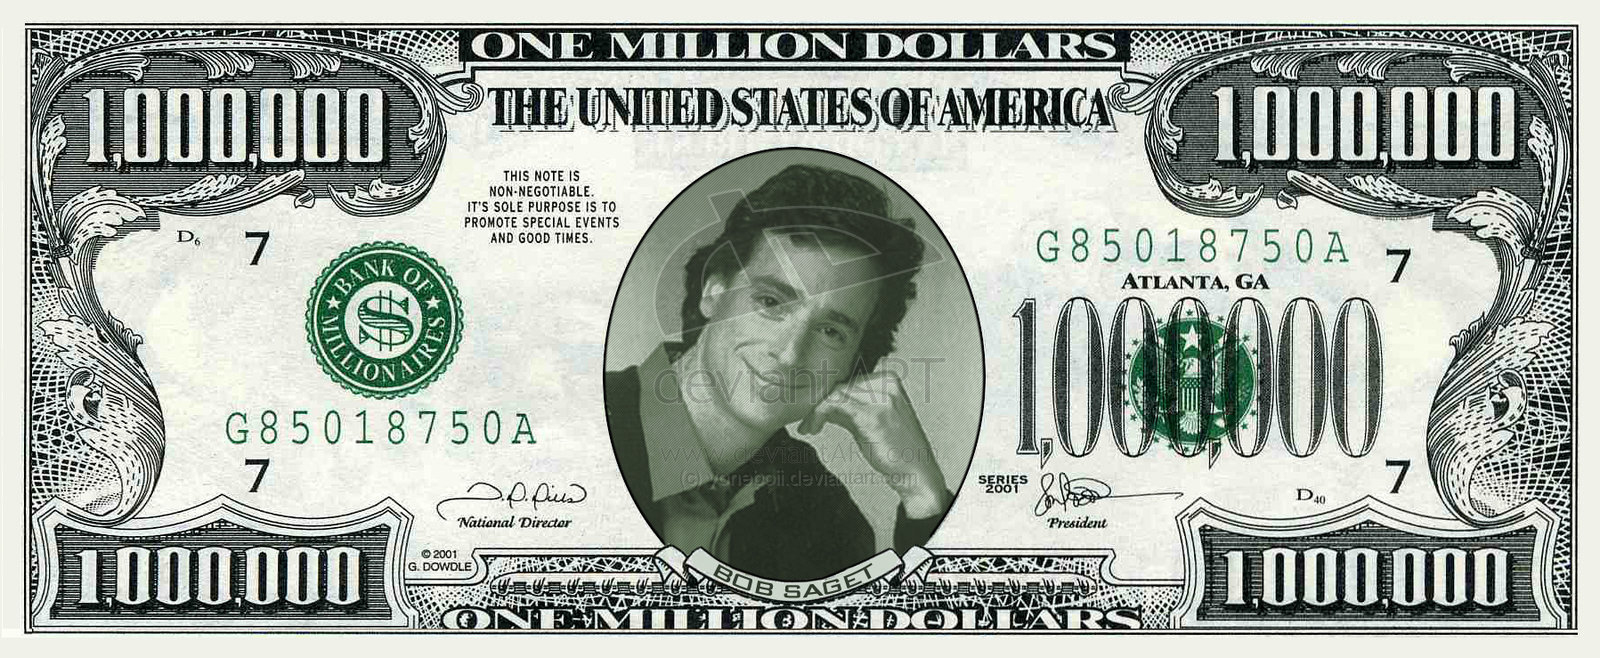 Best Photos Of A Million Dollar Bill Print Printable Fake One 1 - Free Printable Million Dollar Bill